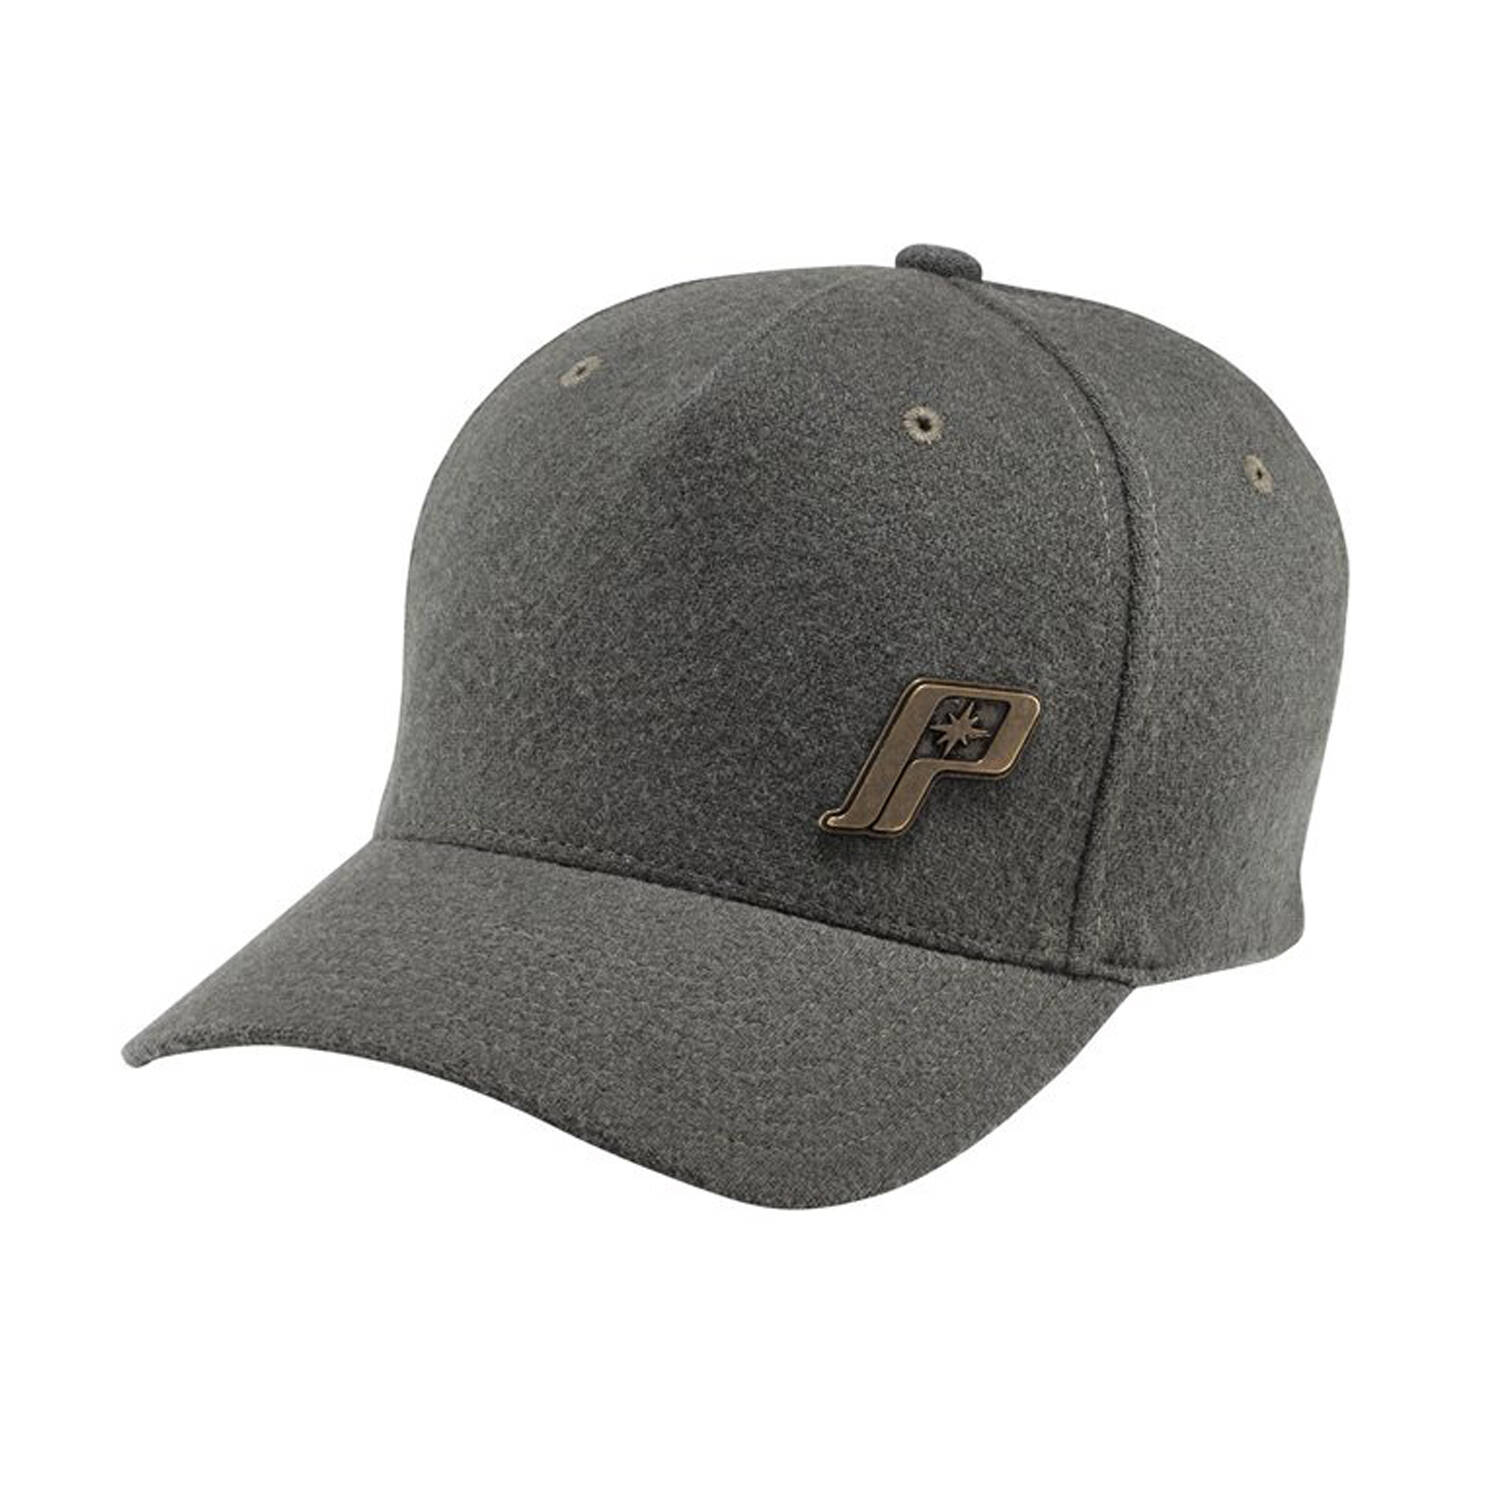 Unisex (S/M) Flexfit Hat with Retro Polaris® Logo, Gray